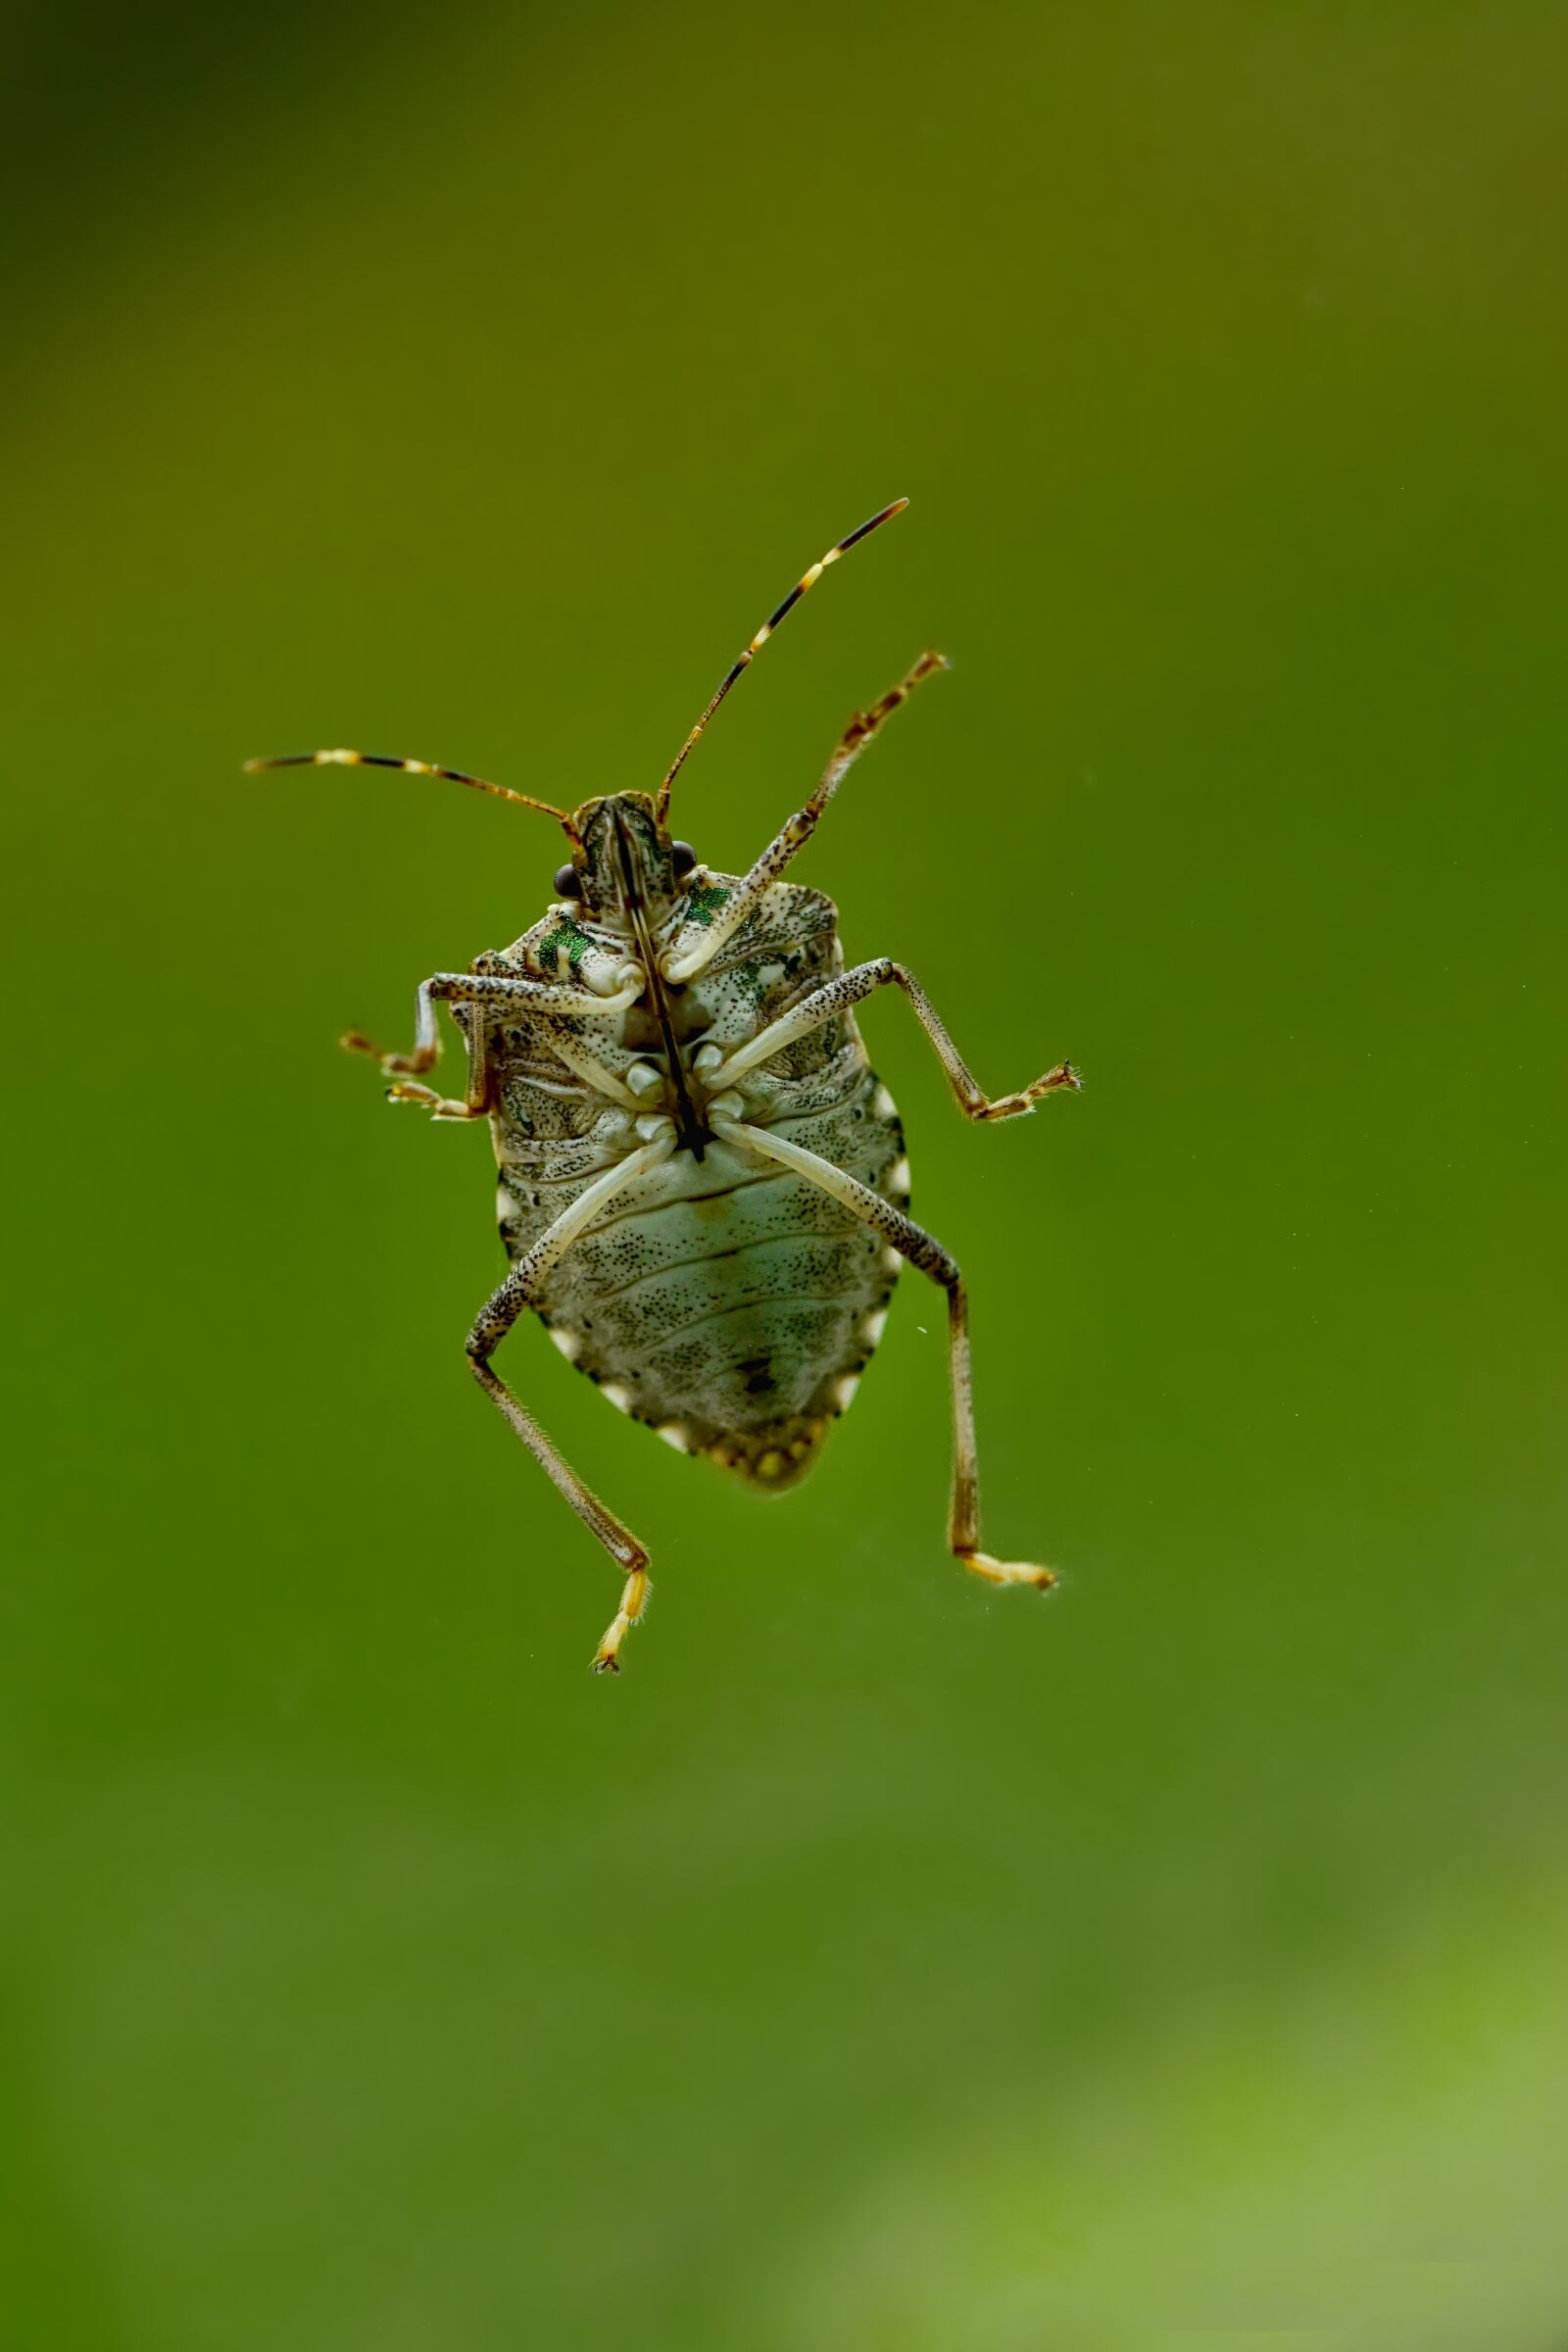 """Sony a6000 sample photo. """"Nature, animal, insect"""" photography"""